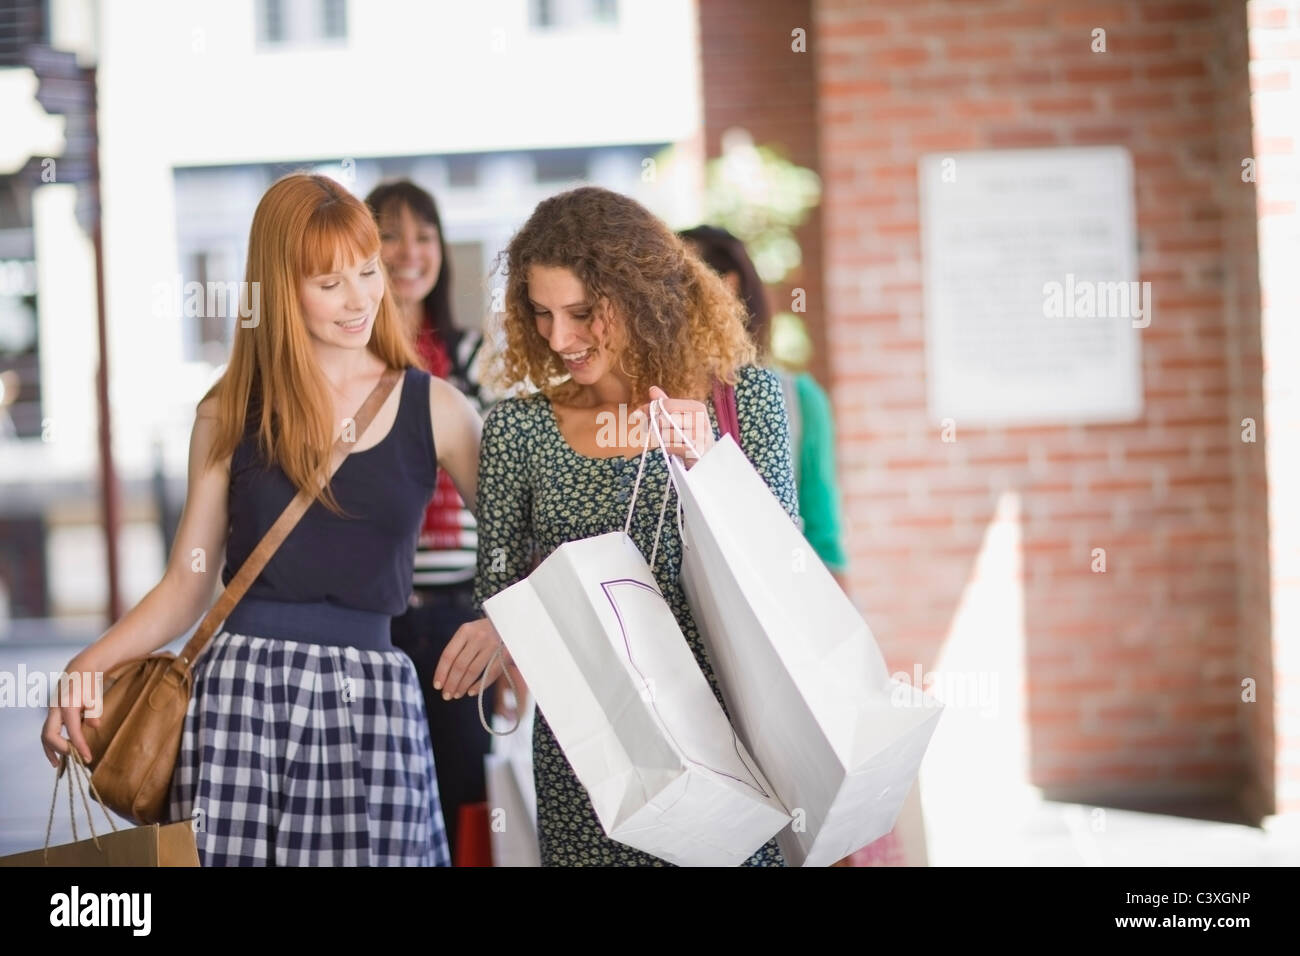 Girlfriends on shopping tour looking in bags - Stock Image